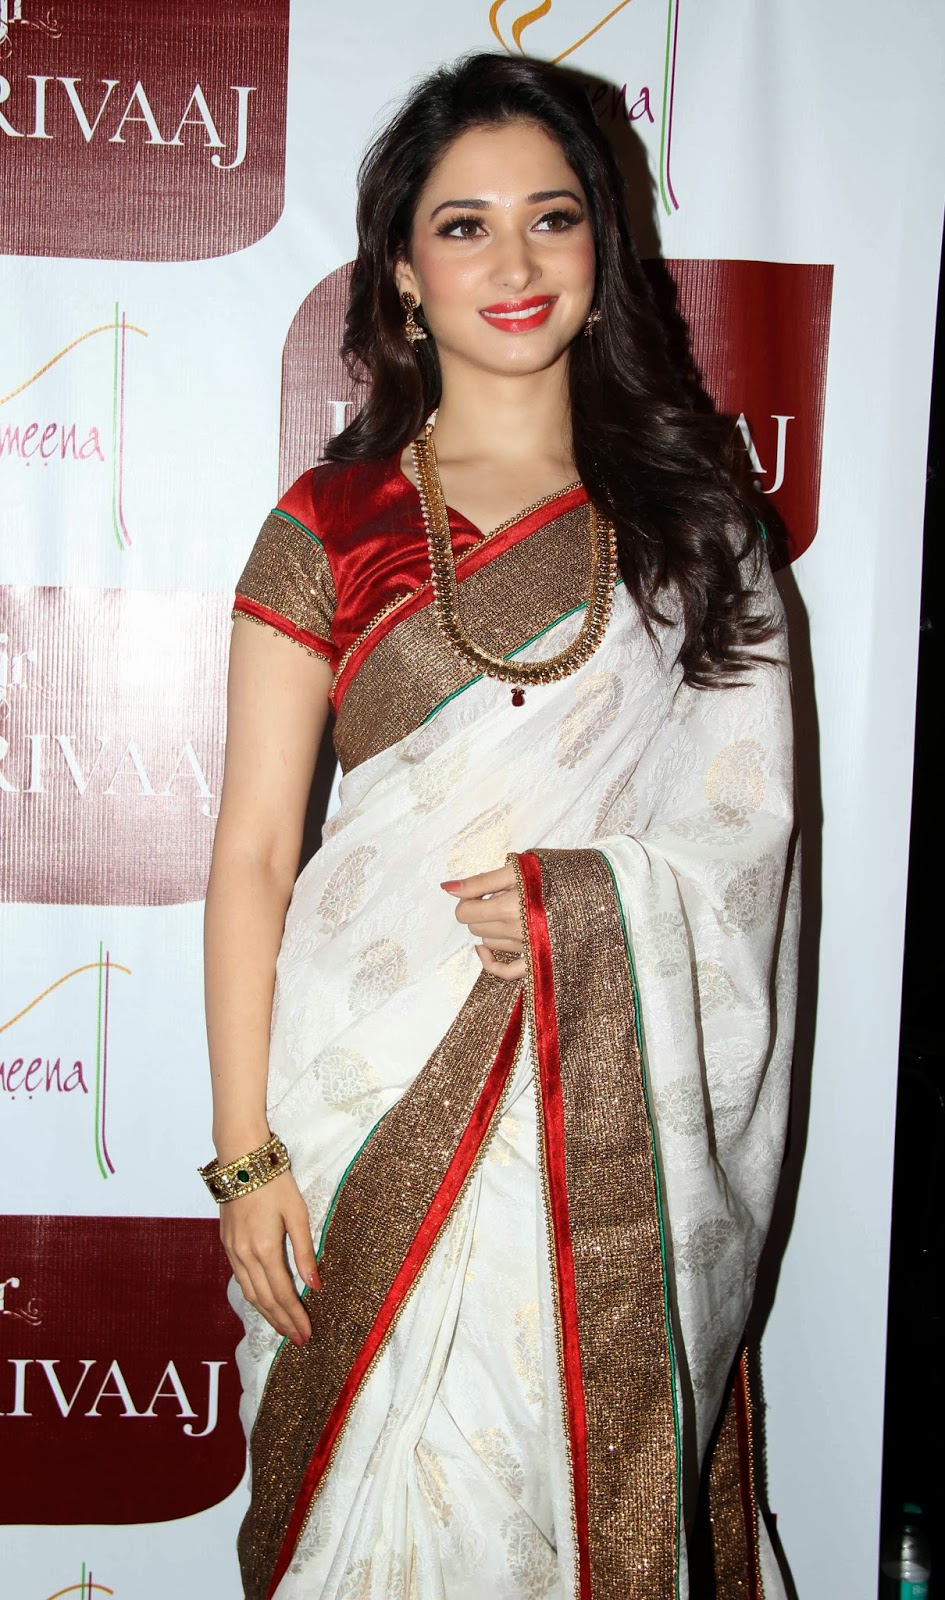 Tamanna Bhatia Dark Red Lipstick Jaree Border White Saree Open Hairs Stunning Beauty